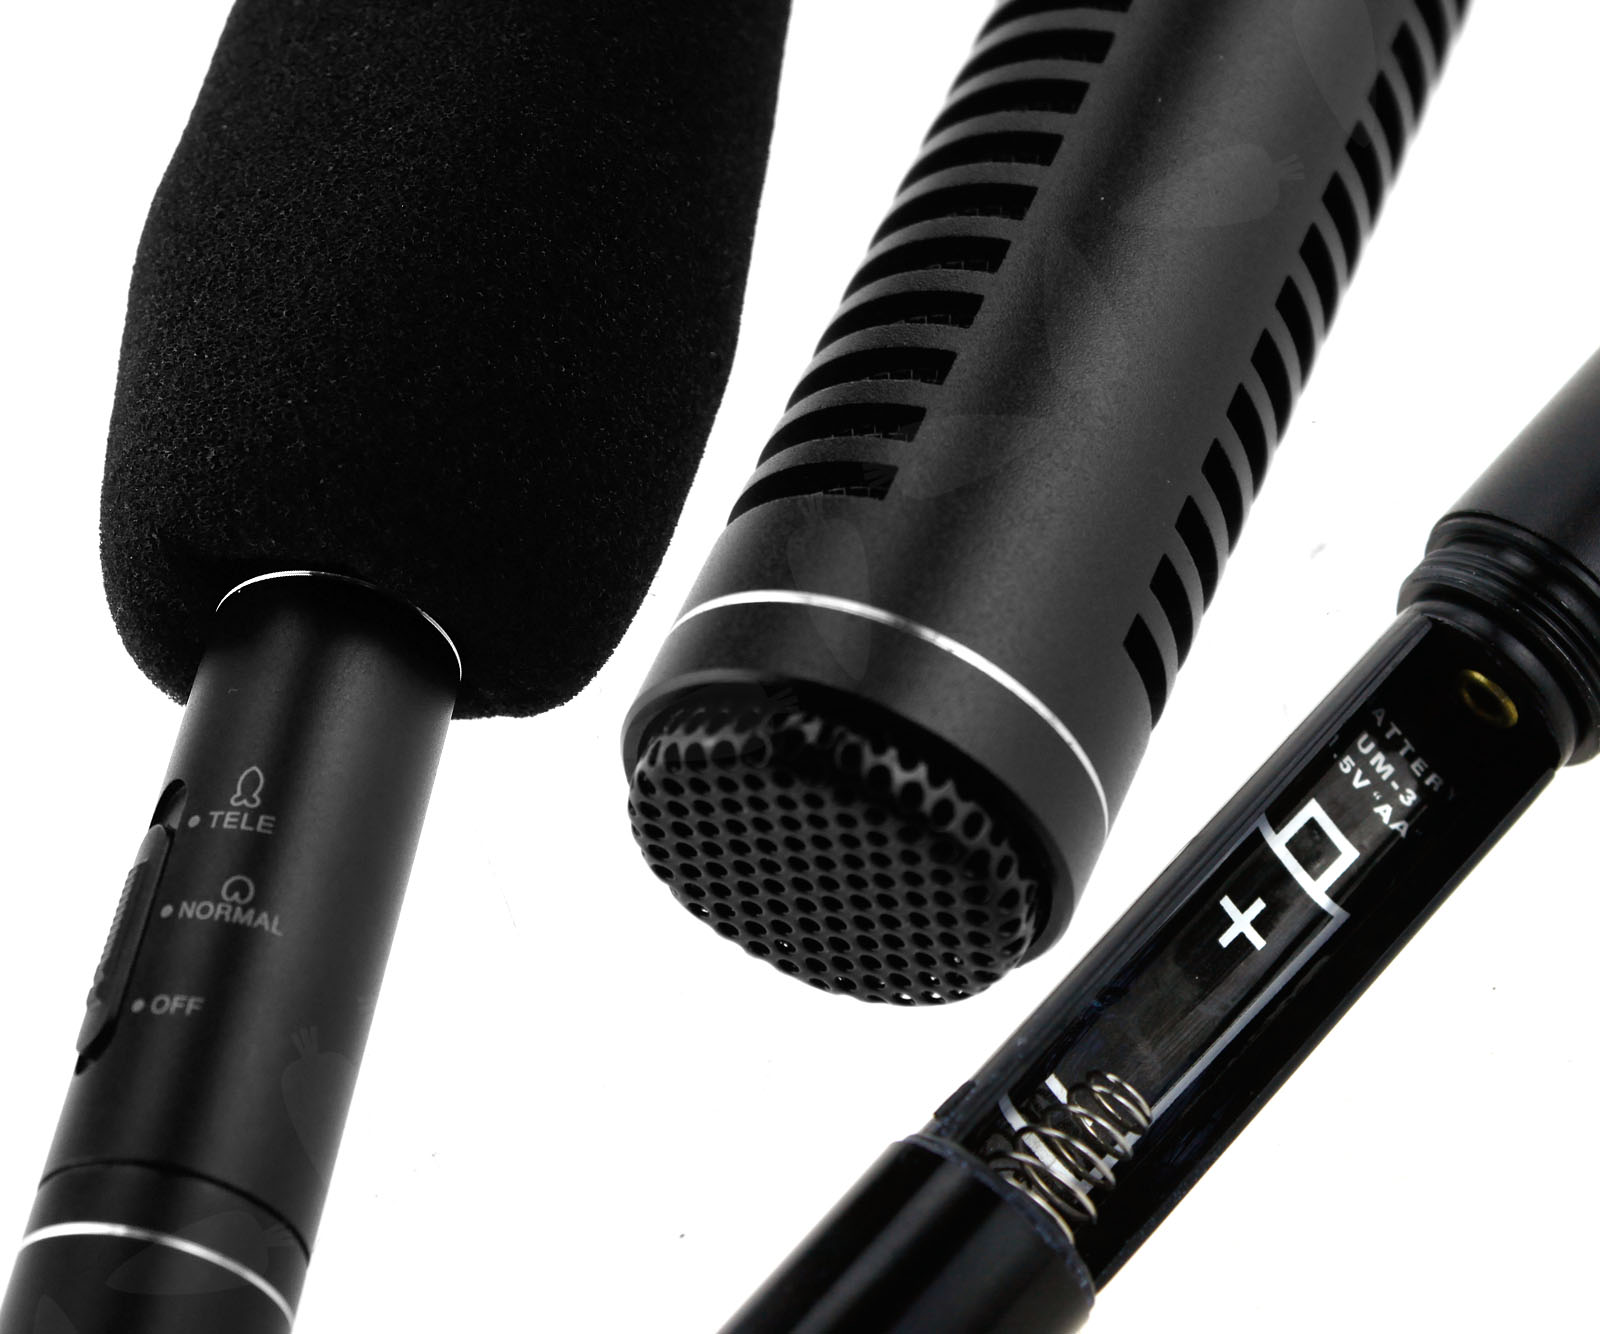 how to set up condenser mic